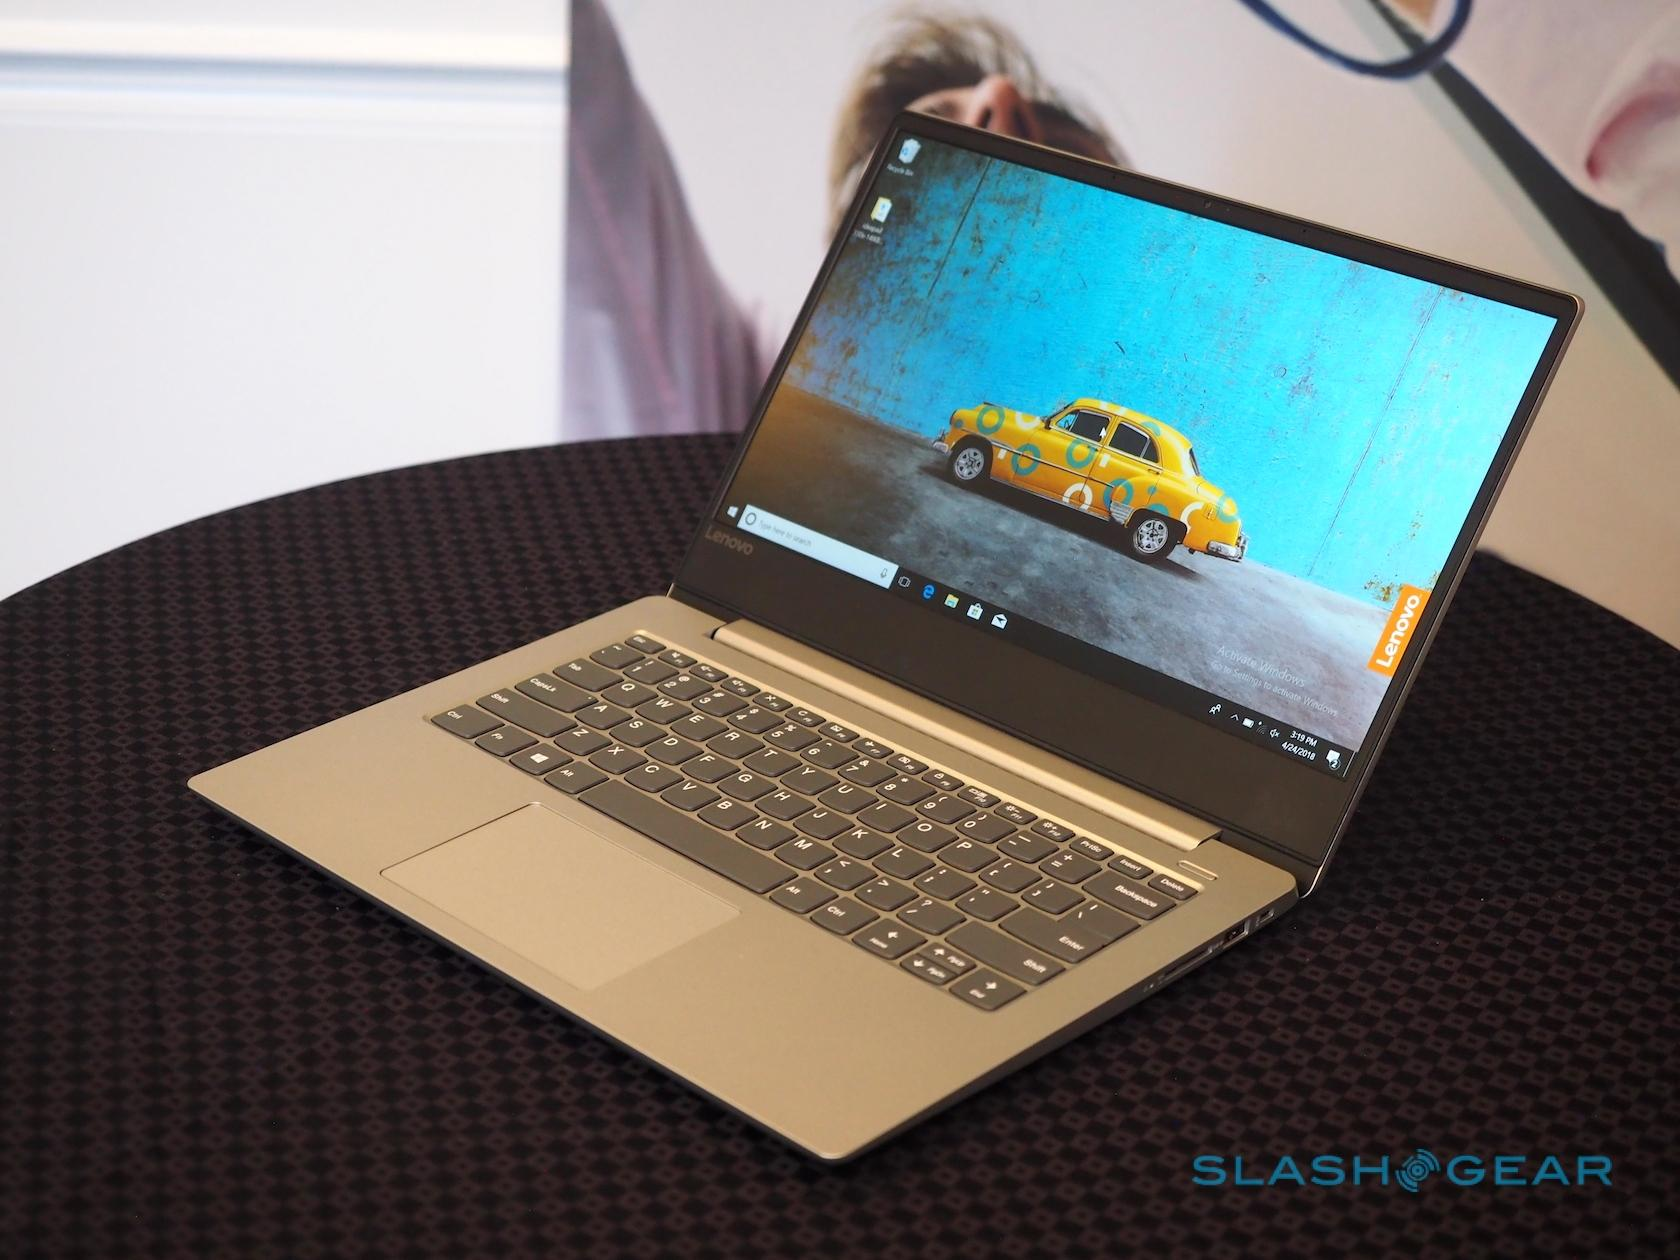 Lenovo IdeaPad 330, 330S, and 530S laptops start at $250